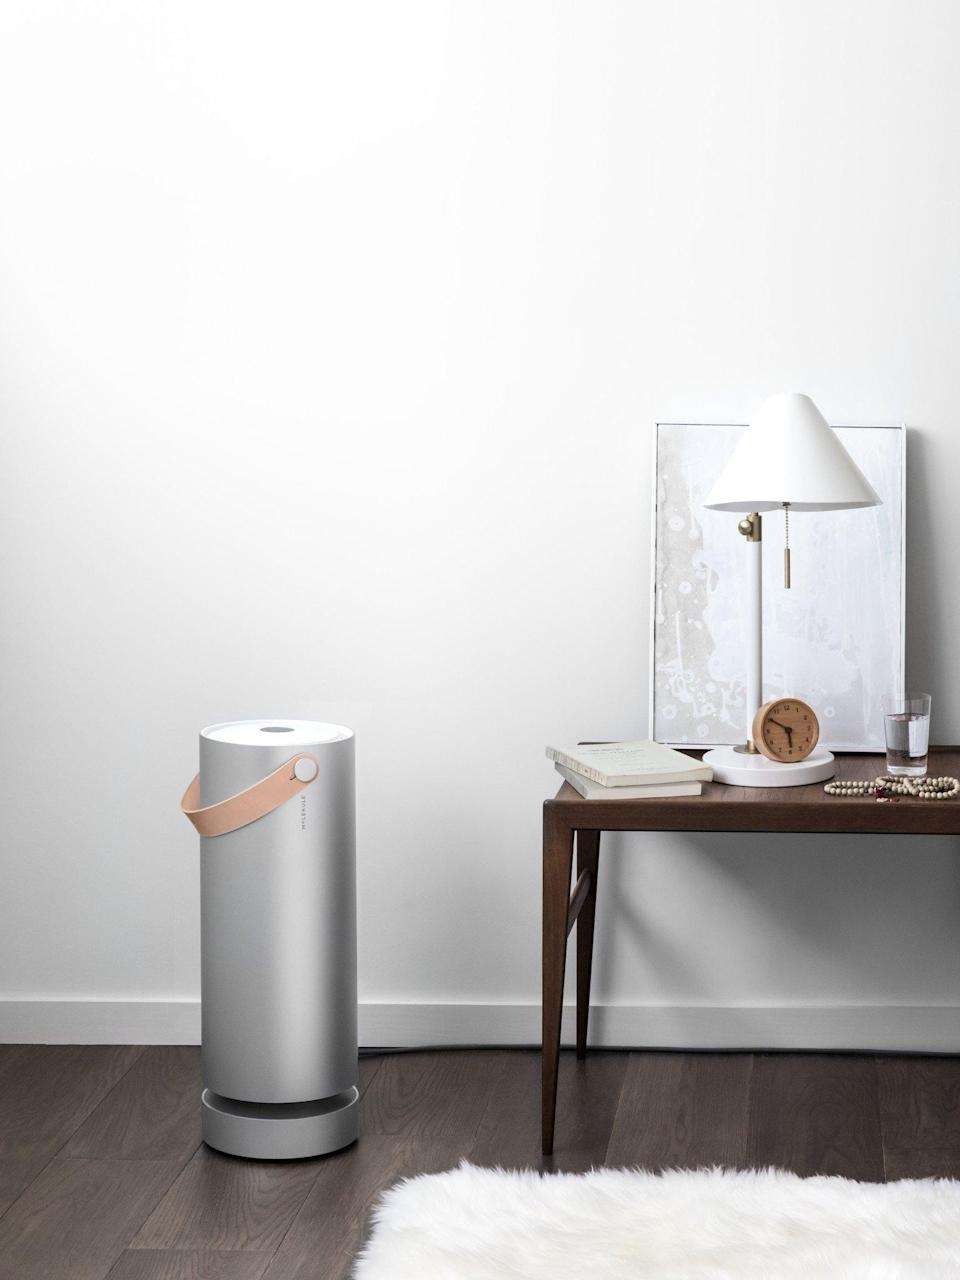 """<strong><h3>Molekule Air </h3></strong><br>Call this purifier the airborne toxin terminator — its sharp structure is easy on the eyes and its revolutionary nanotechnology epically, """"destroys pollutants at the molecular level.""""<br><br><em>Shop <a href=""""https://amzn.to/2NC5CDk"""" rel=""""nofollow noopener"""" target=""""_blank"""" data-ylk=""""slk:Molekule"""" class=""""link rapid-noclick-resp"""">Molekule</a></em><br><br><strong>Molekule</strong> Large Room Air Purifier, $, available at <a href=""""https://amzn.to/34d75Eq"""" rel=""""nofollow noopener"""" target=""""_blank"""" data-ylk=""""slk:Amazon"""" class=""""link rapid-noclick-resp"""">Amazon</a>"""